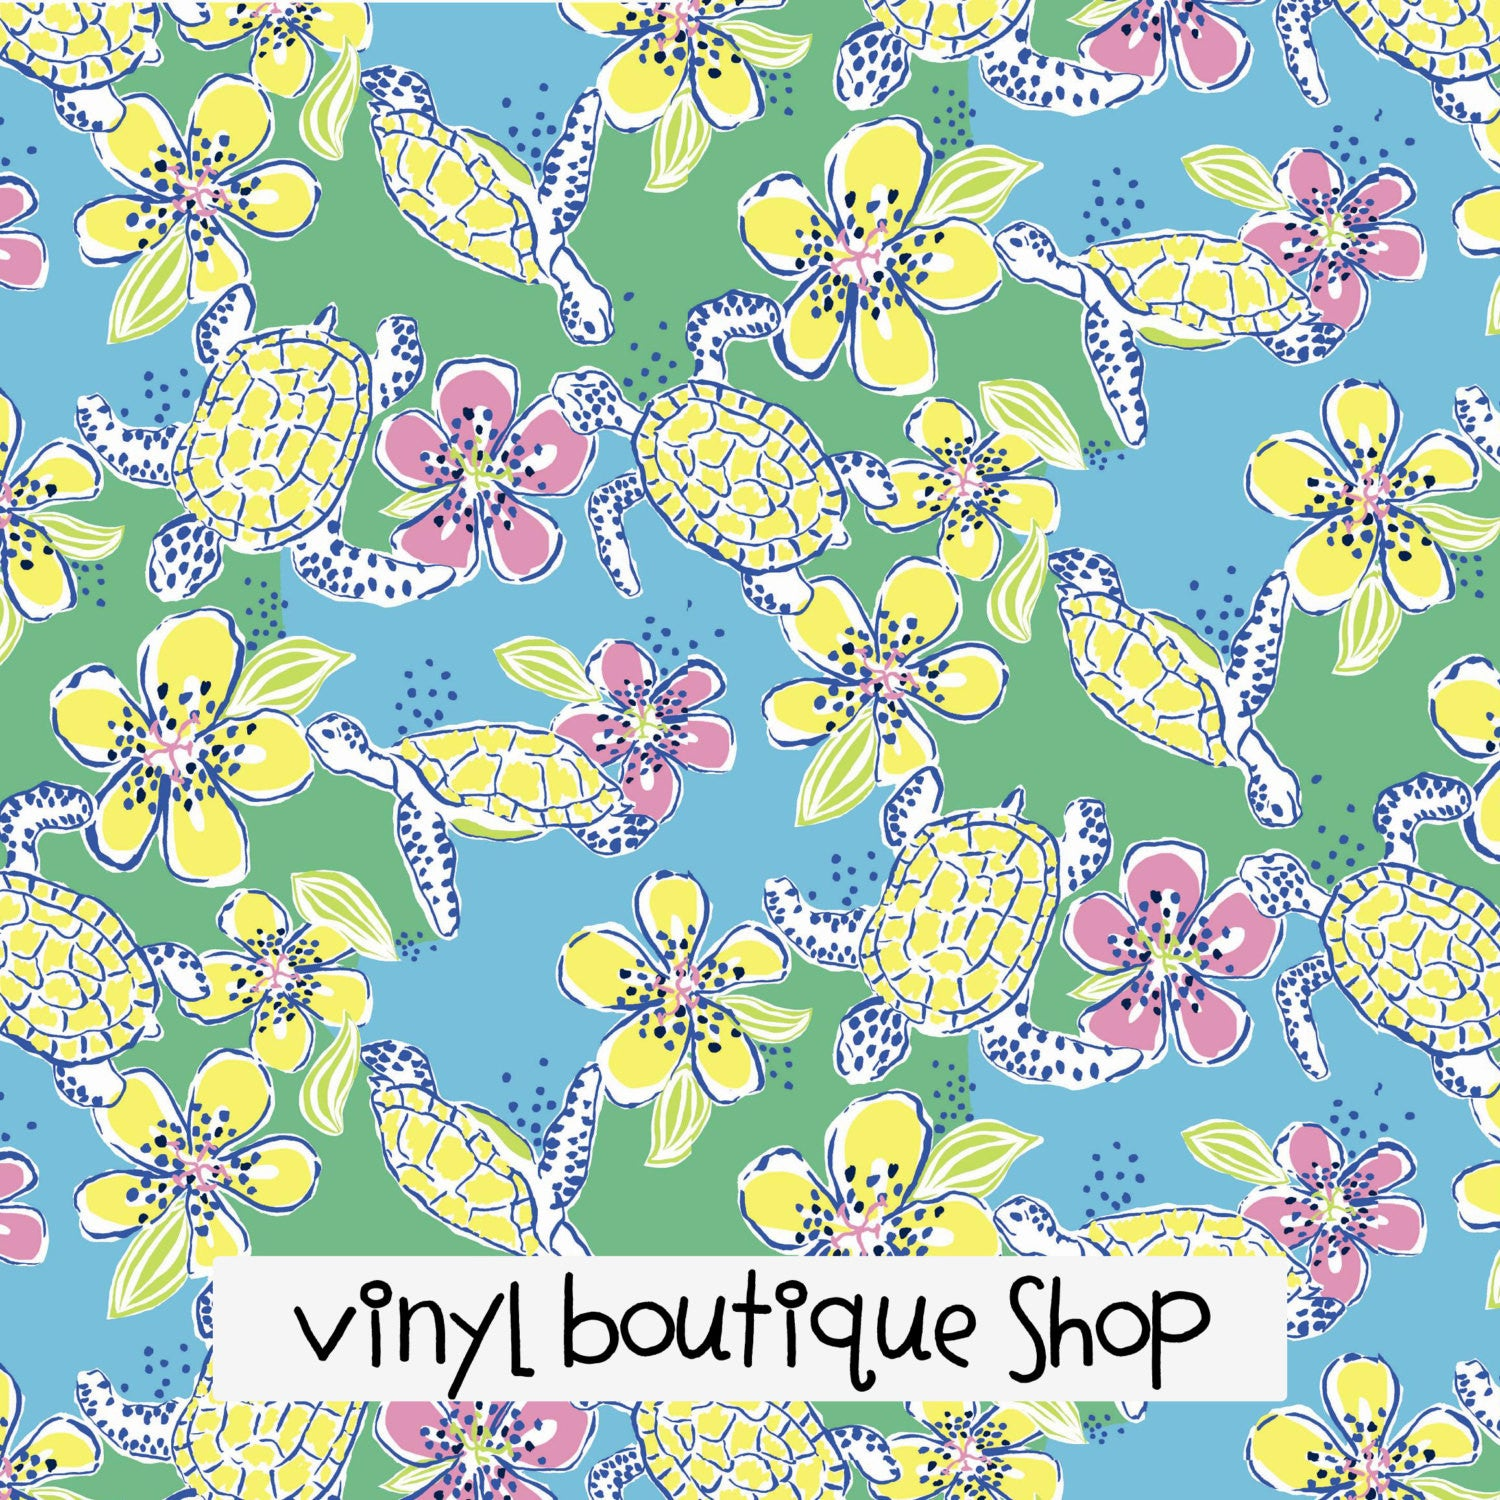 Moving Slowly Turtle Floral Lilly Inspired Printed Patterned Craft Vinyl - Vinyl Boutique Shop